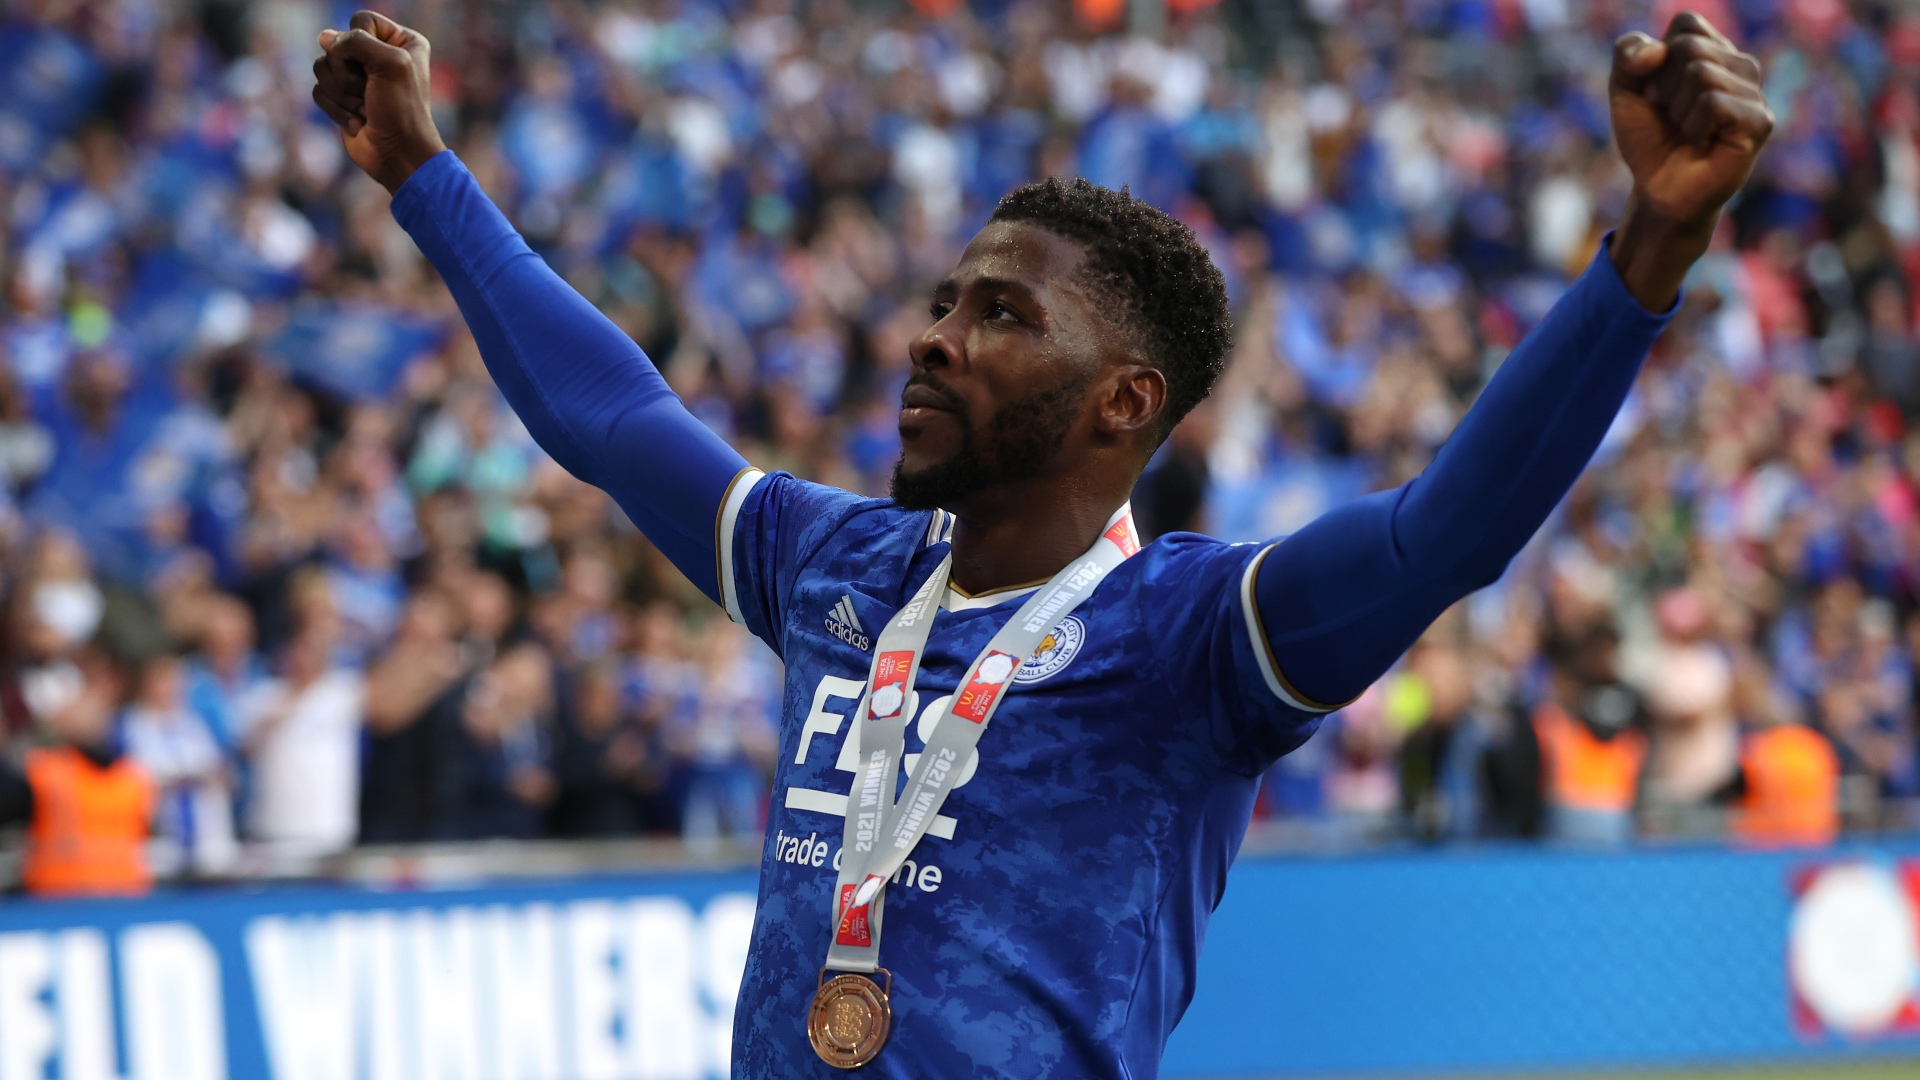 'He caught me' - Iheanacho defends Community Shield penalty call after leading Leicester to Man City win